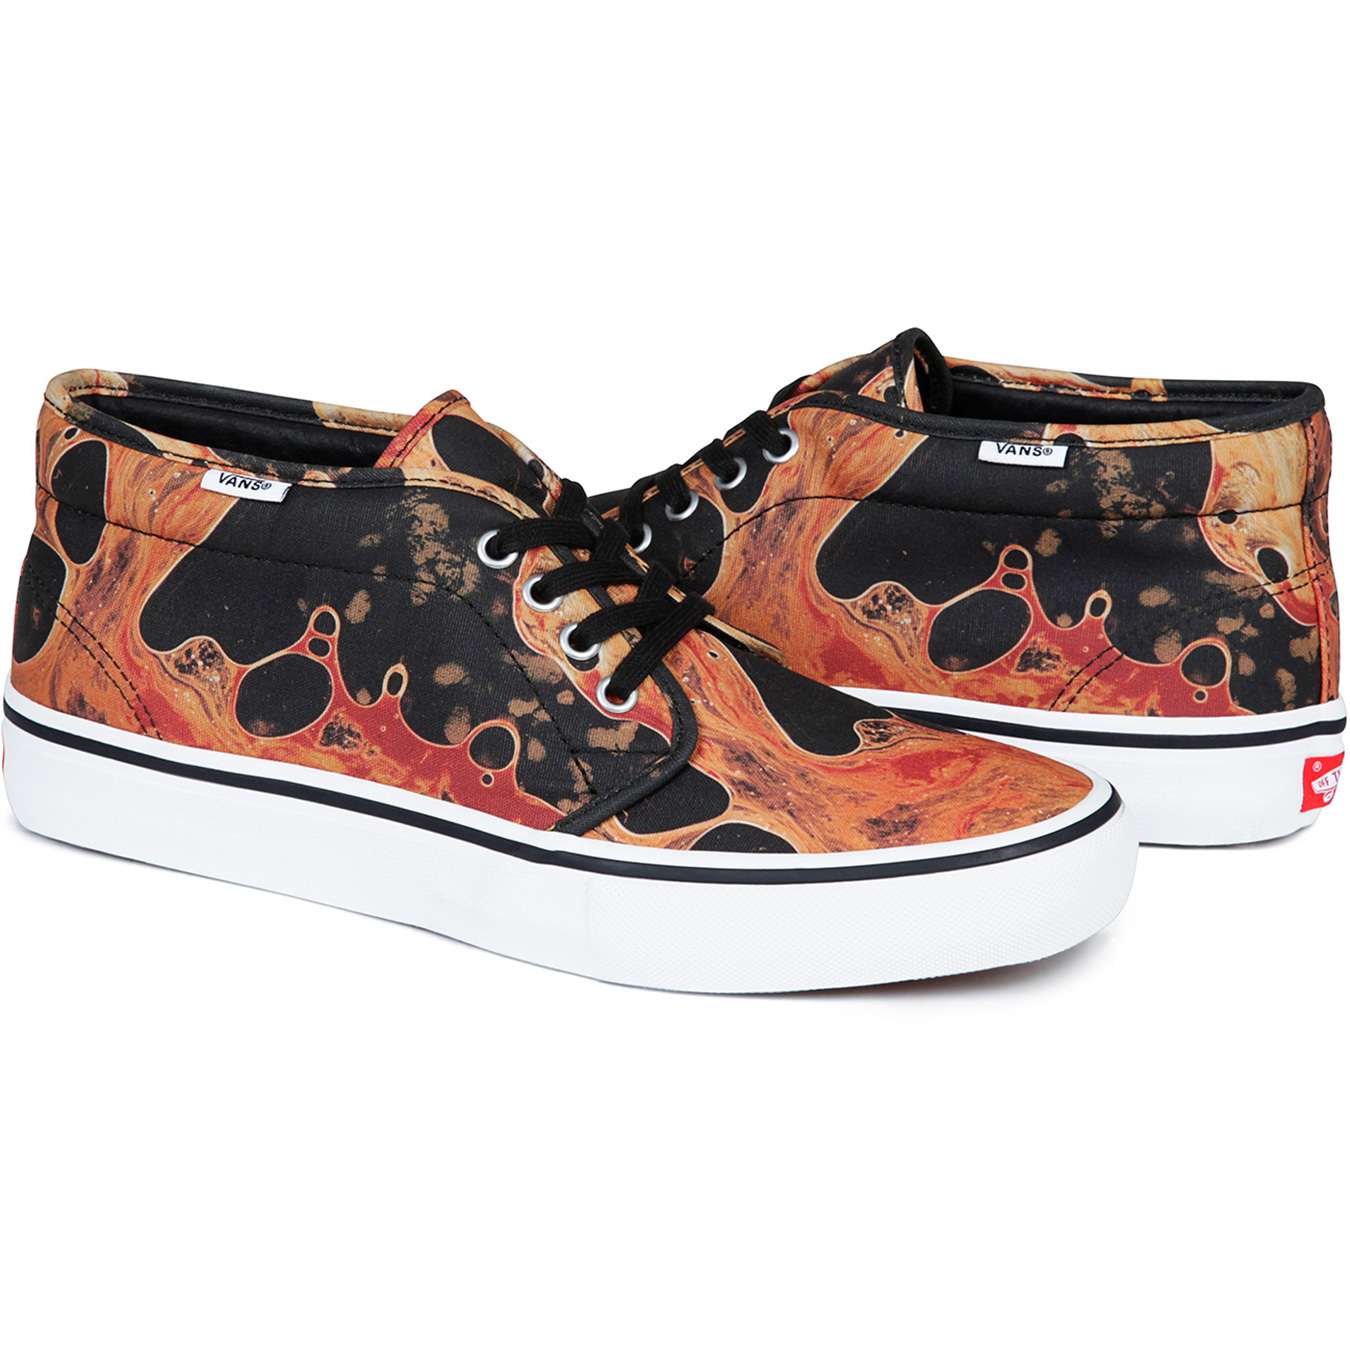 supreme-andres-serrano-vans-chukka-2017aw-release-20170923